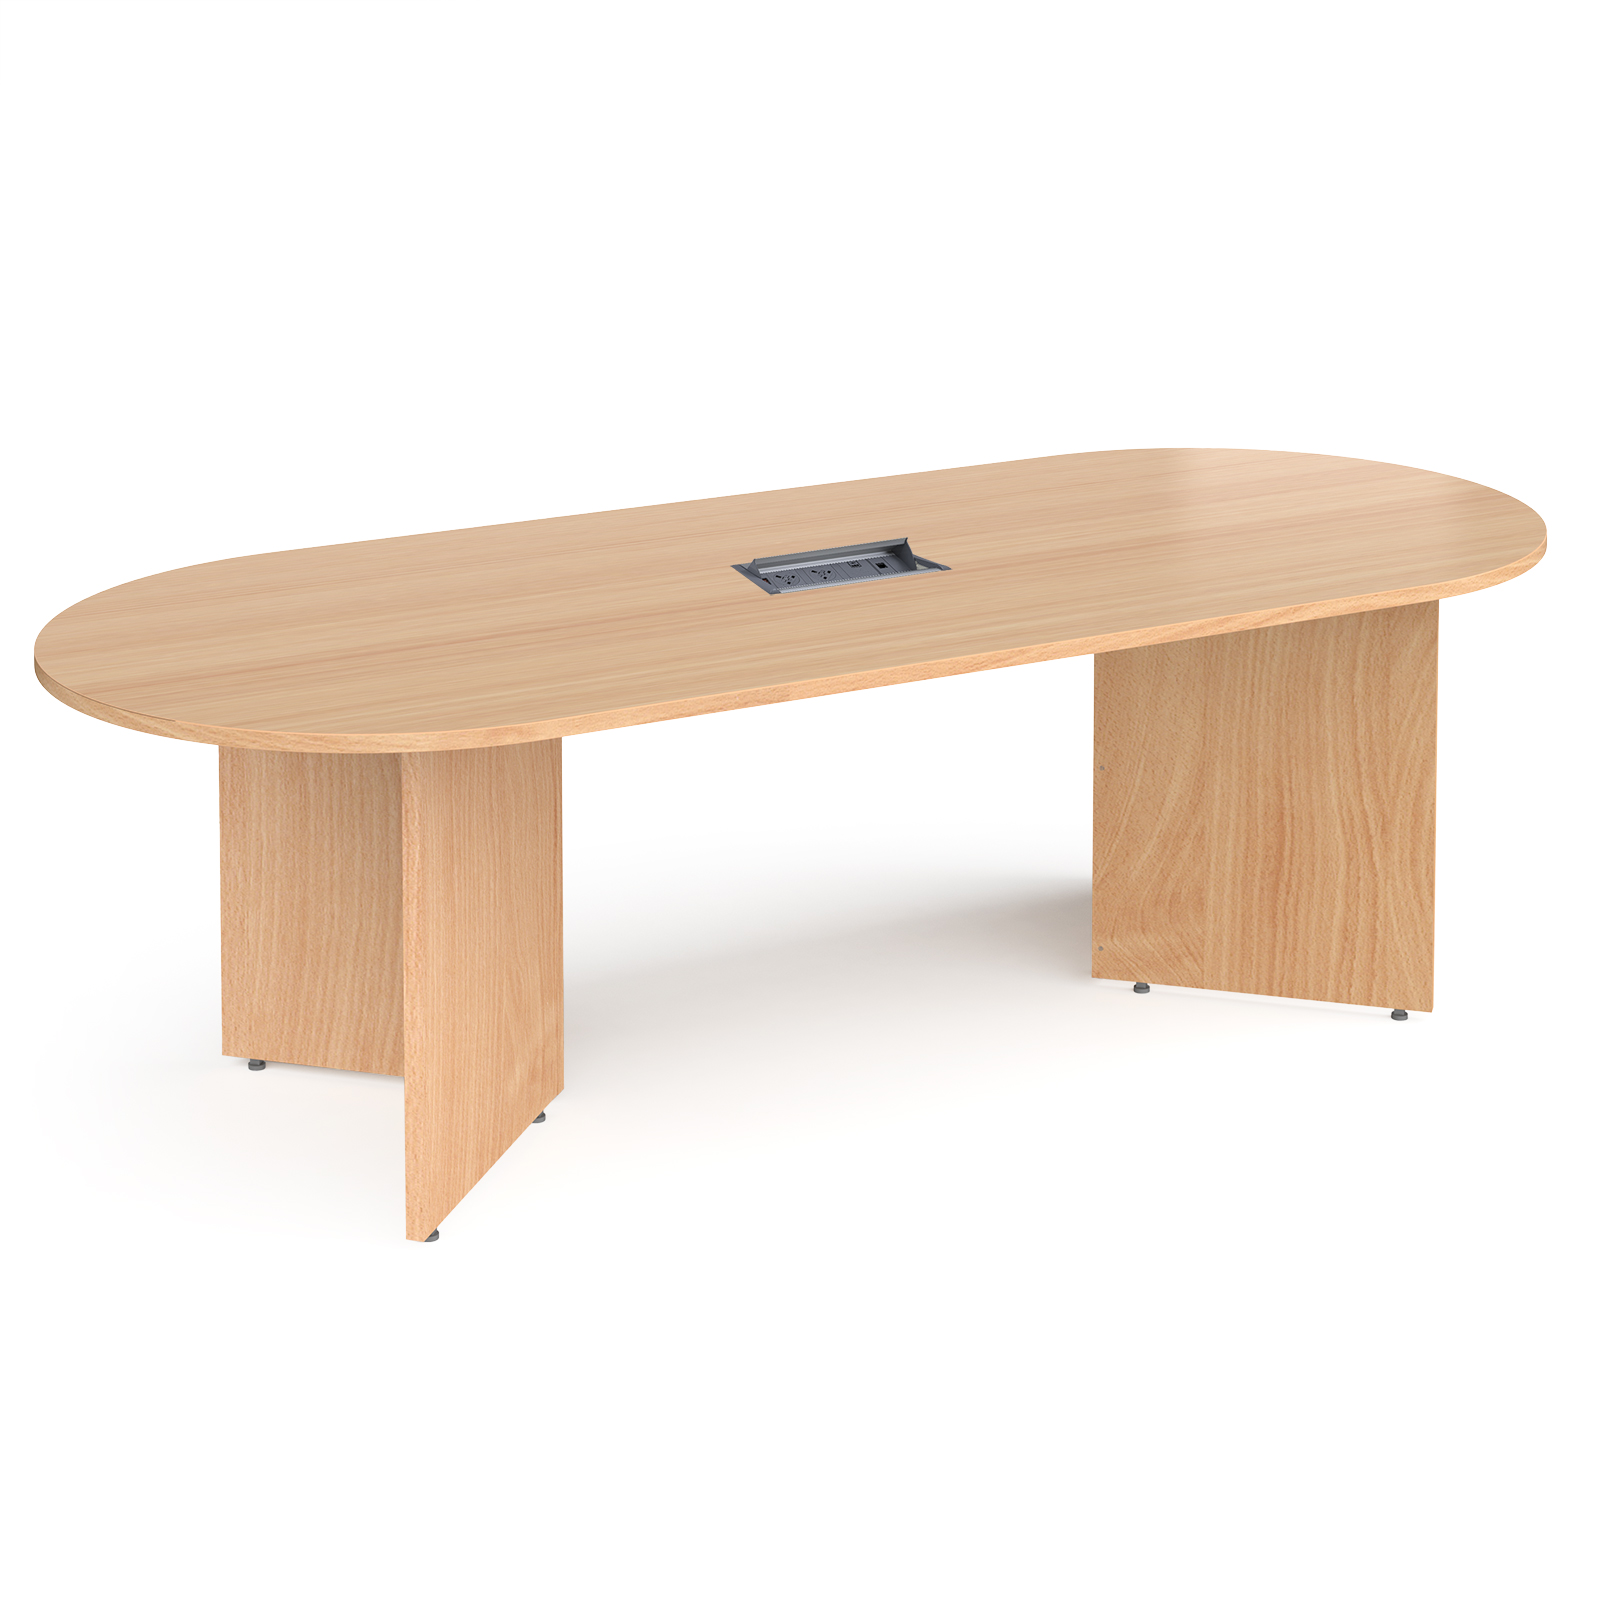 Arrow head leg radial end boardroom table 2400mm x 1000mm in beech with central cutout and Aero power module